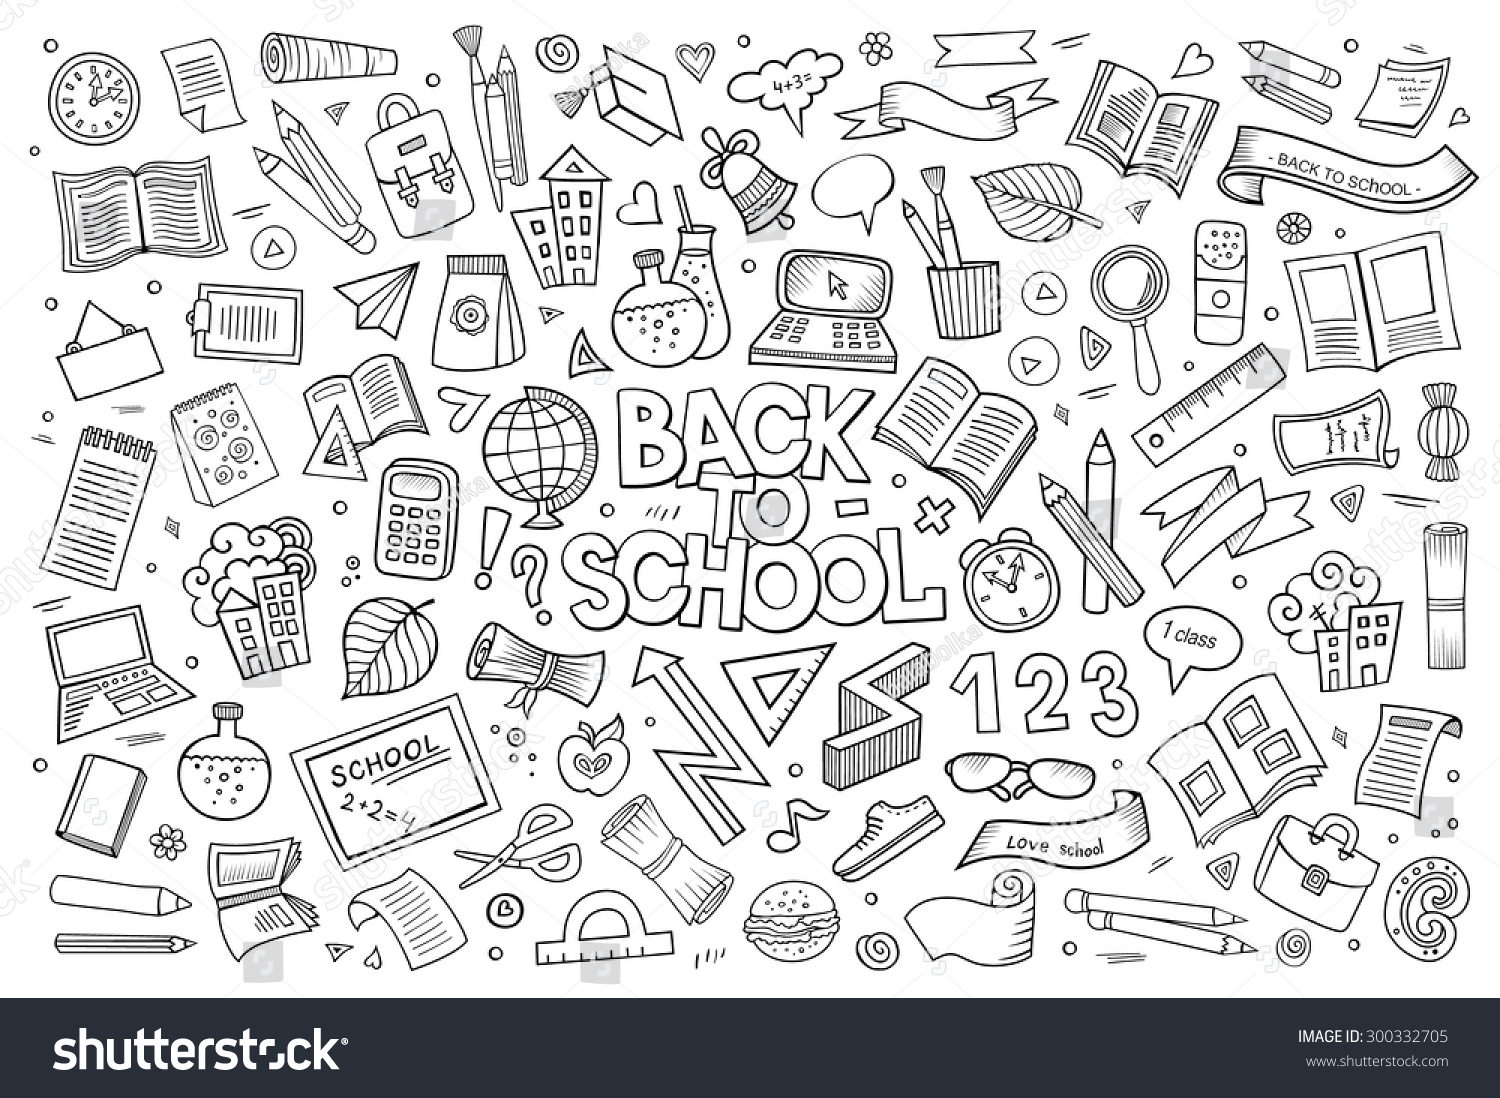 Notebook And Pen Sketch Stock Vector Art More Images Of: School Education Doodles Hand Drawn Vector Stock Vector